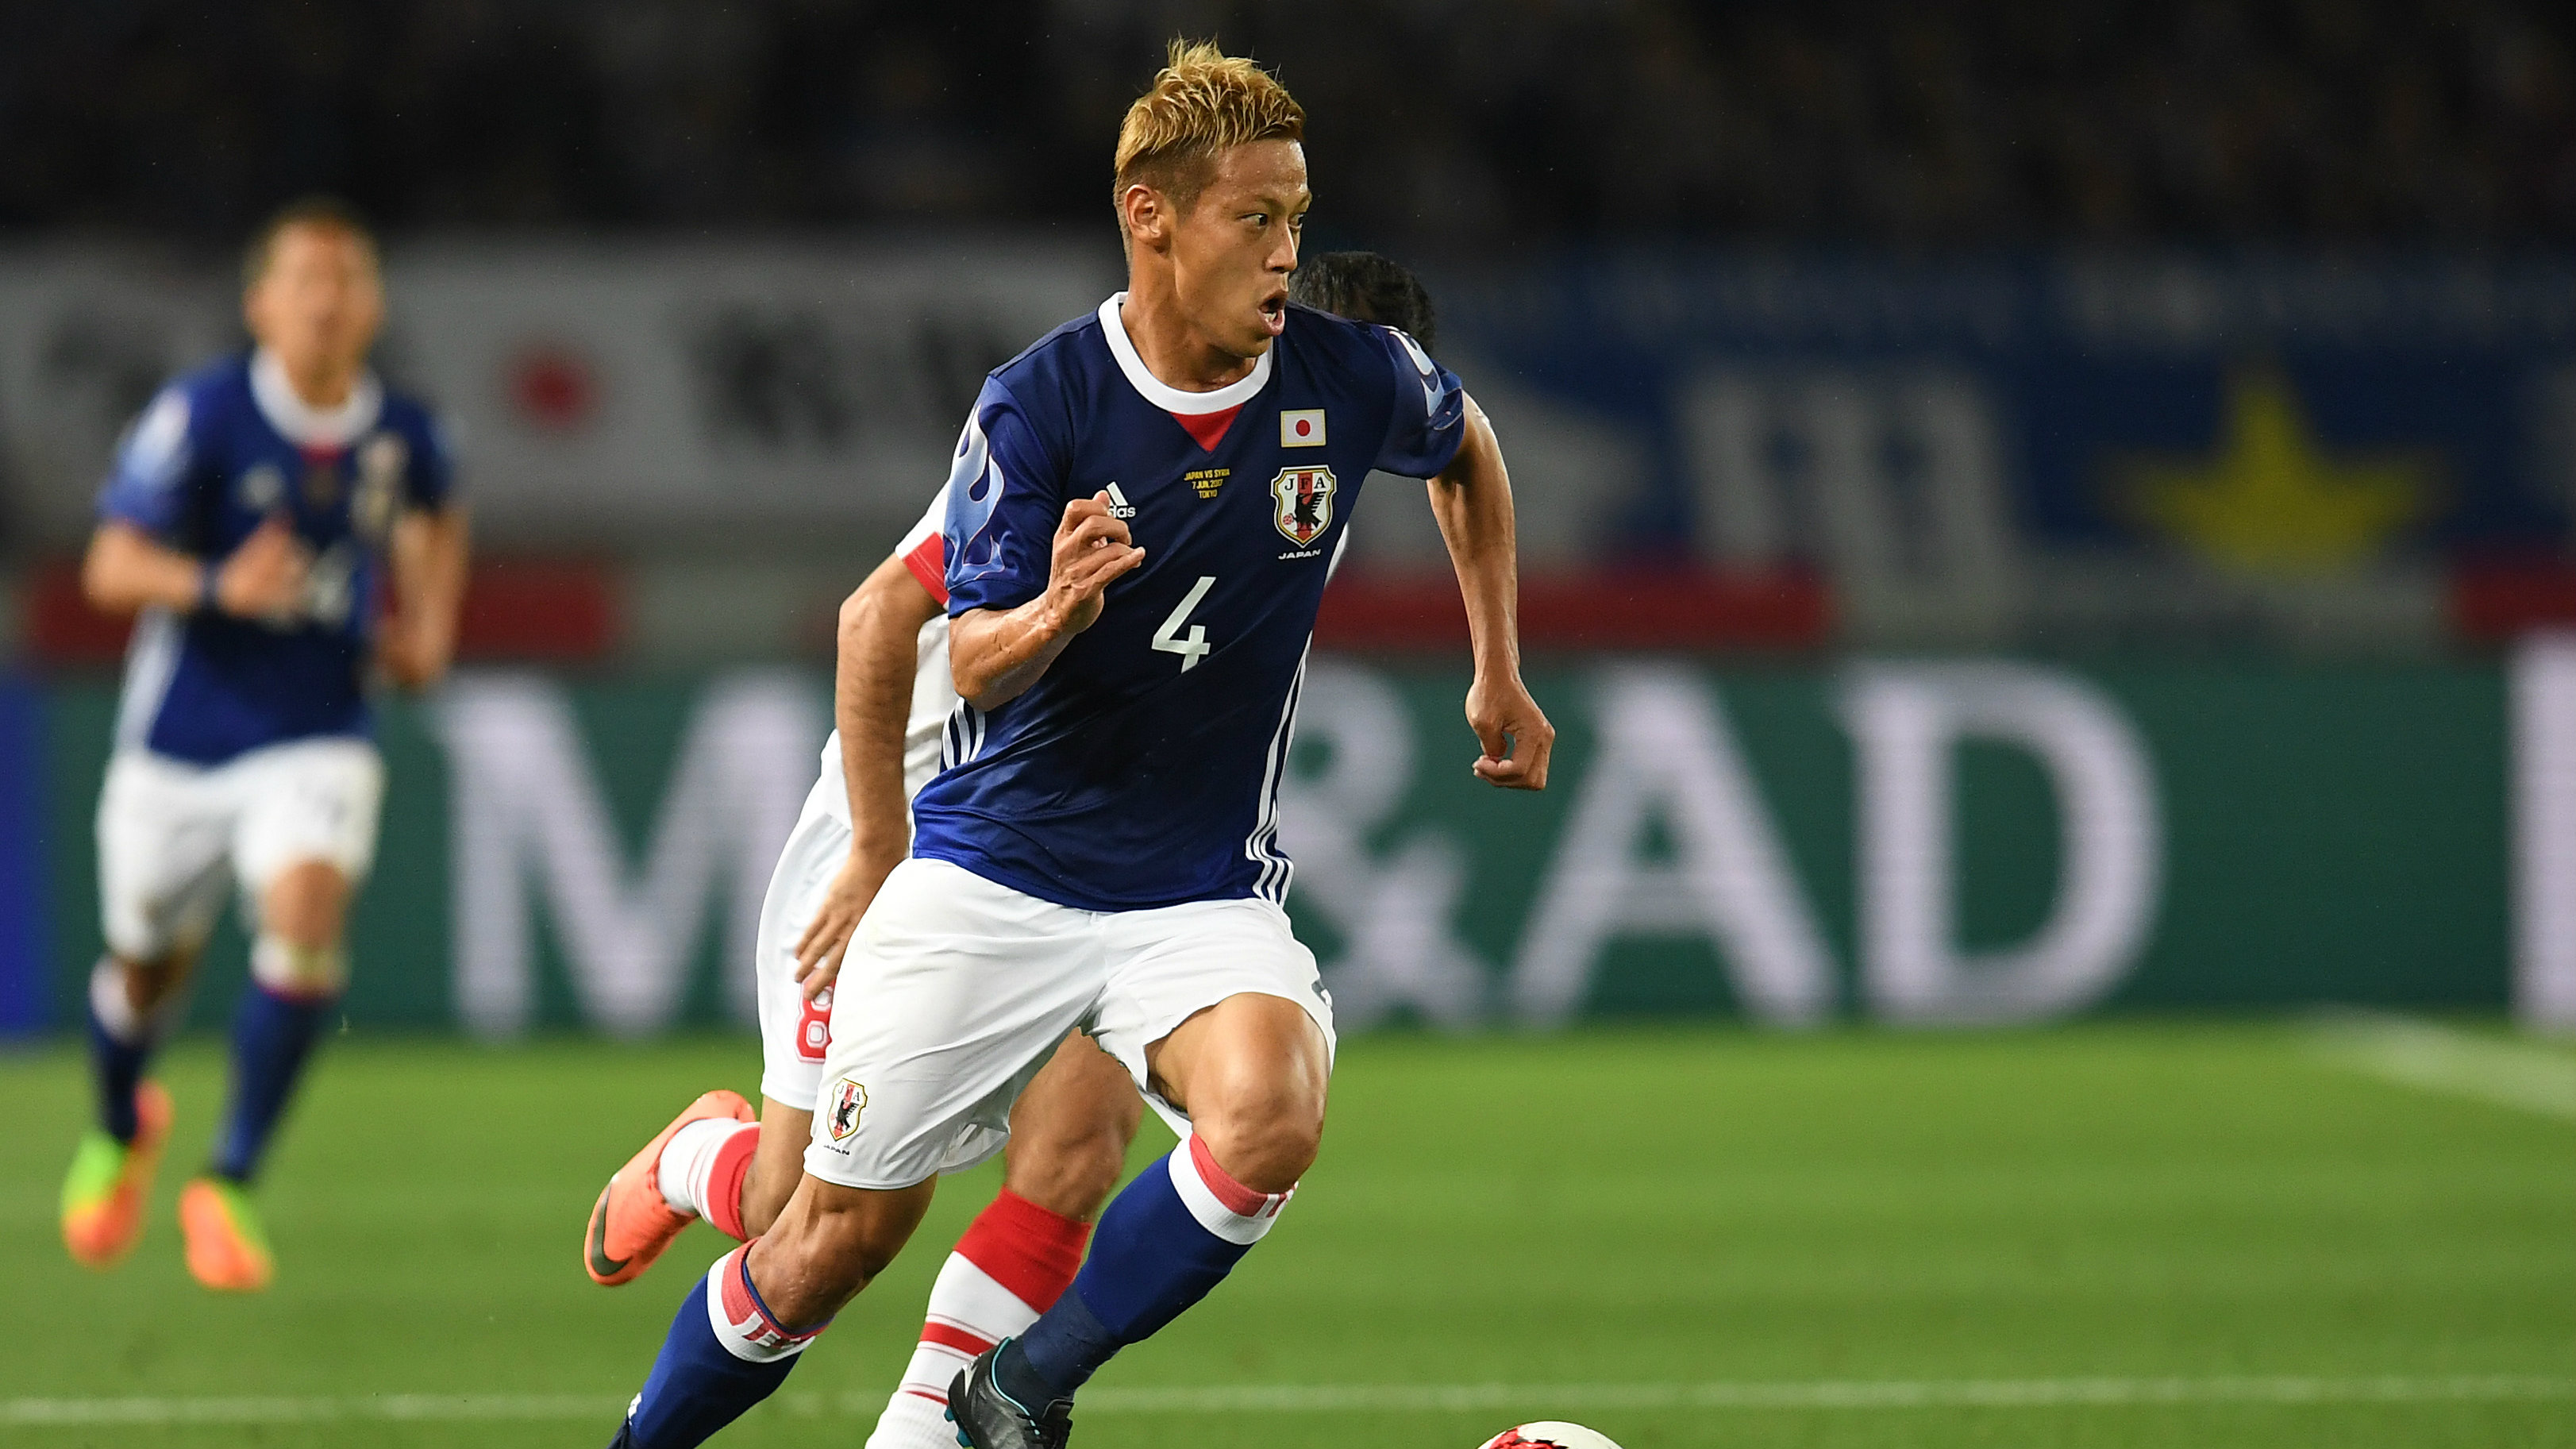 Japanese national team superstar Keisuke Honda.